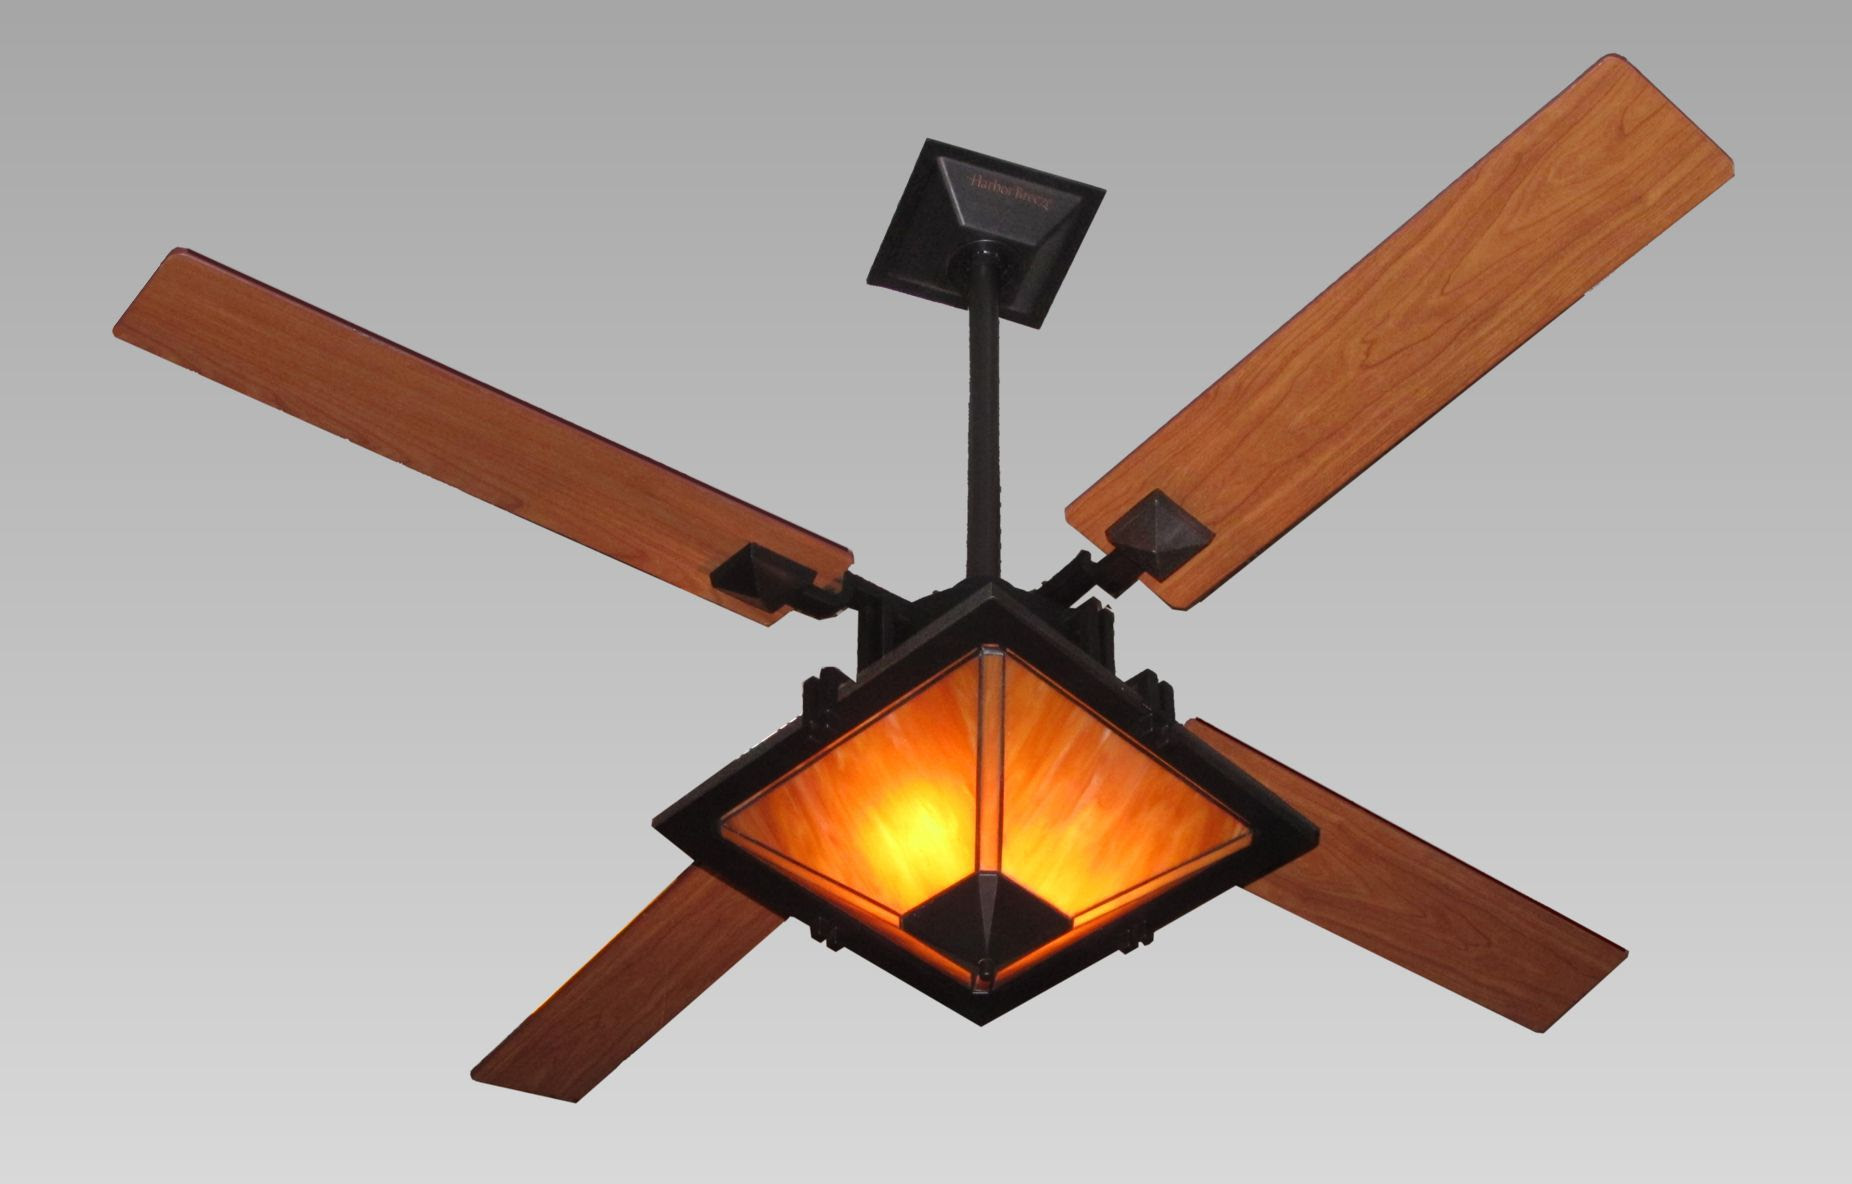 Ceiling Fans and Lighting by Jay Tinen at Coroflot.com